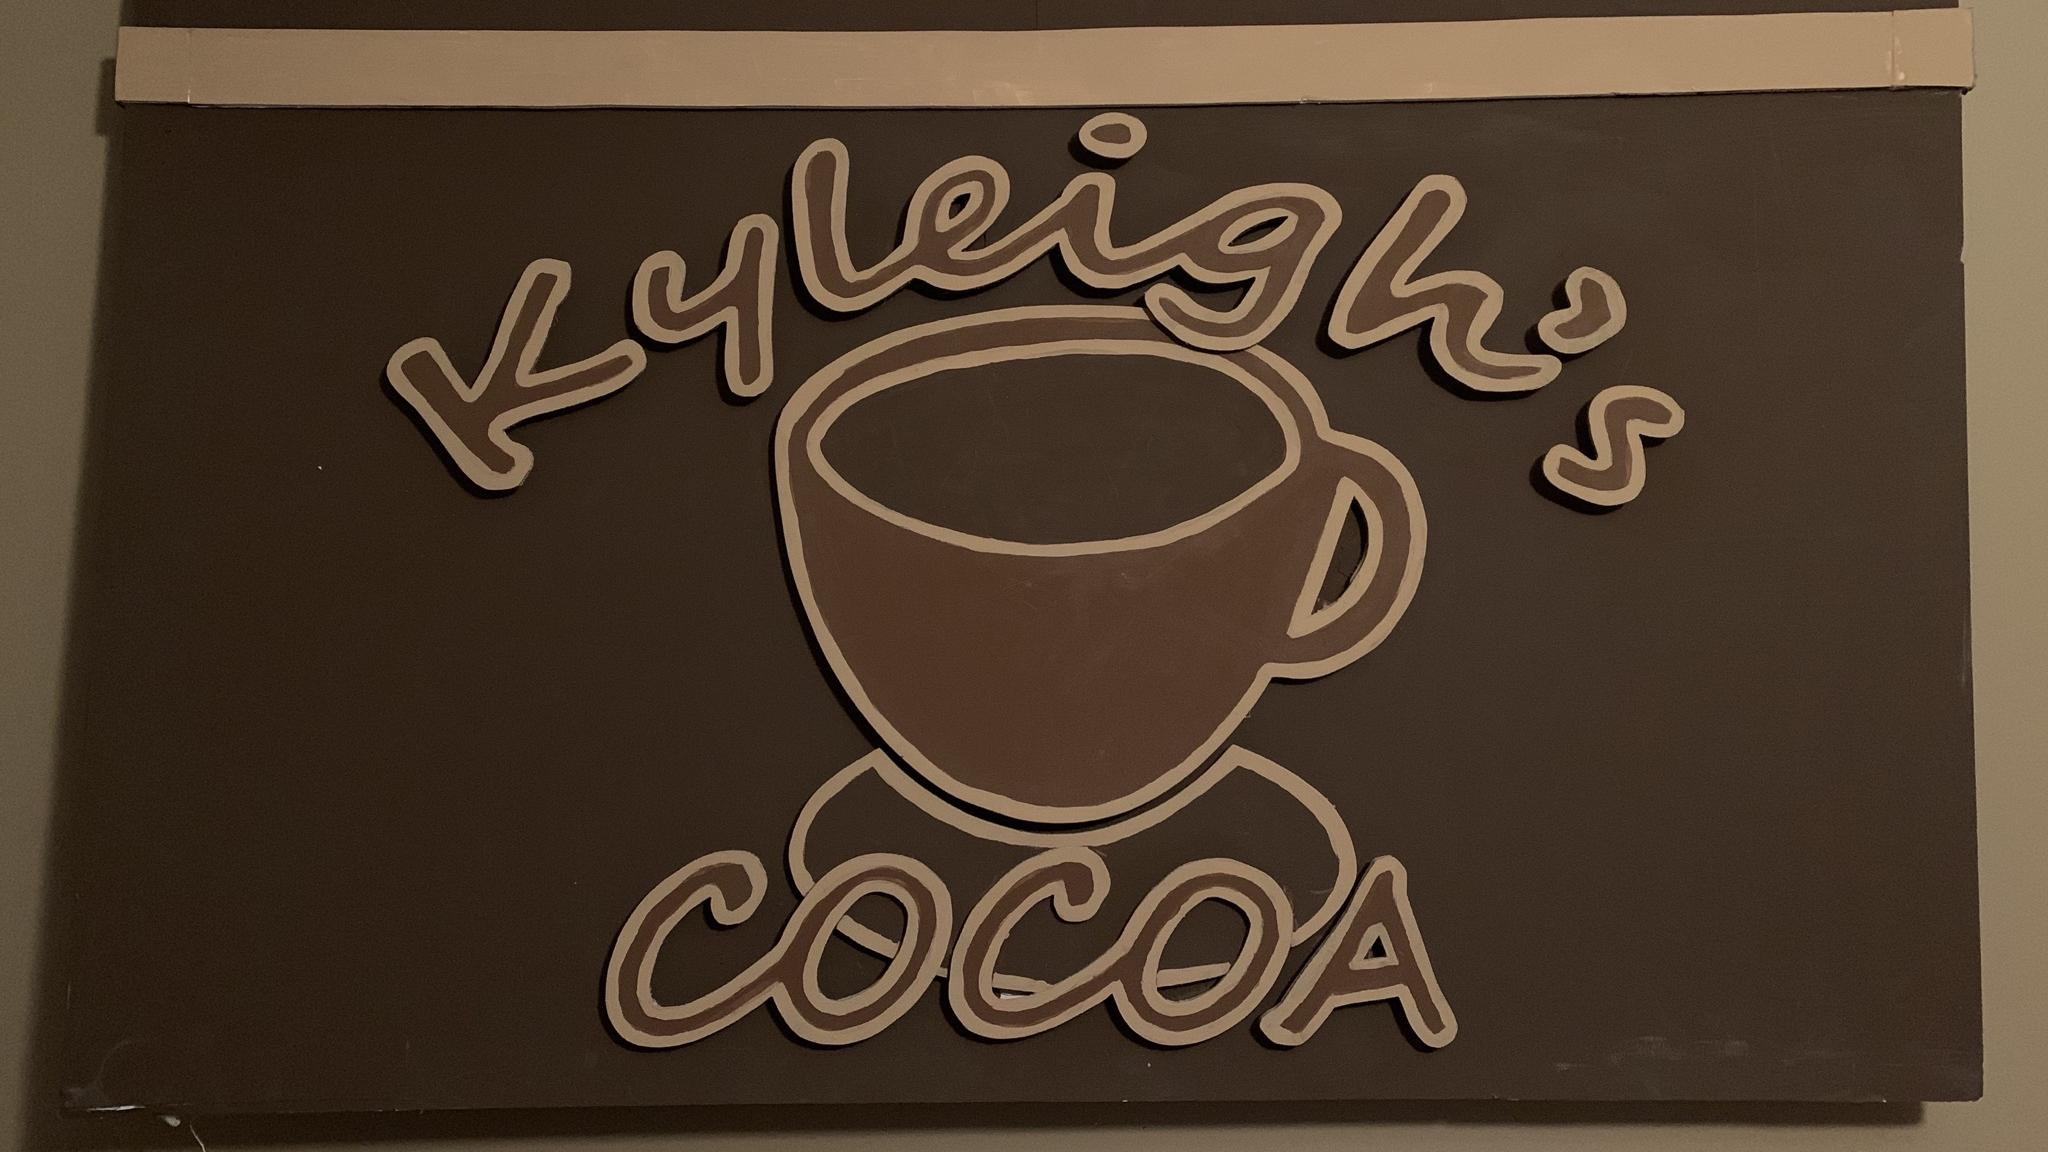 Kyleigh's Cocoa Stand